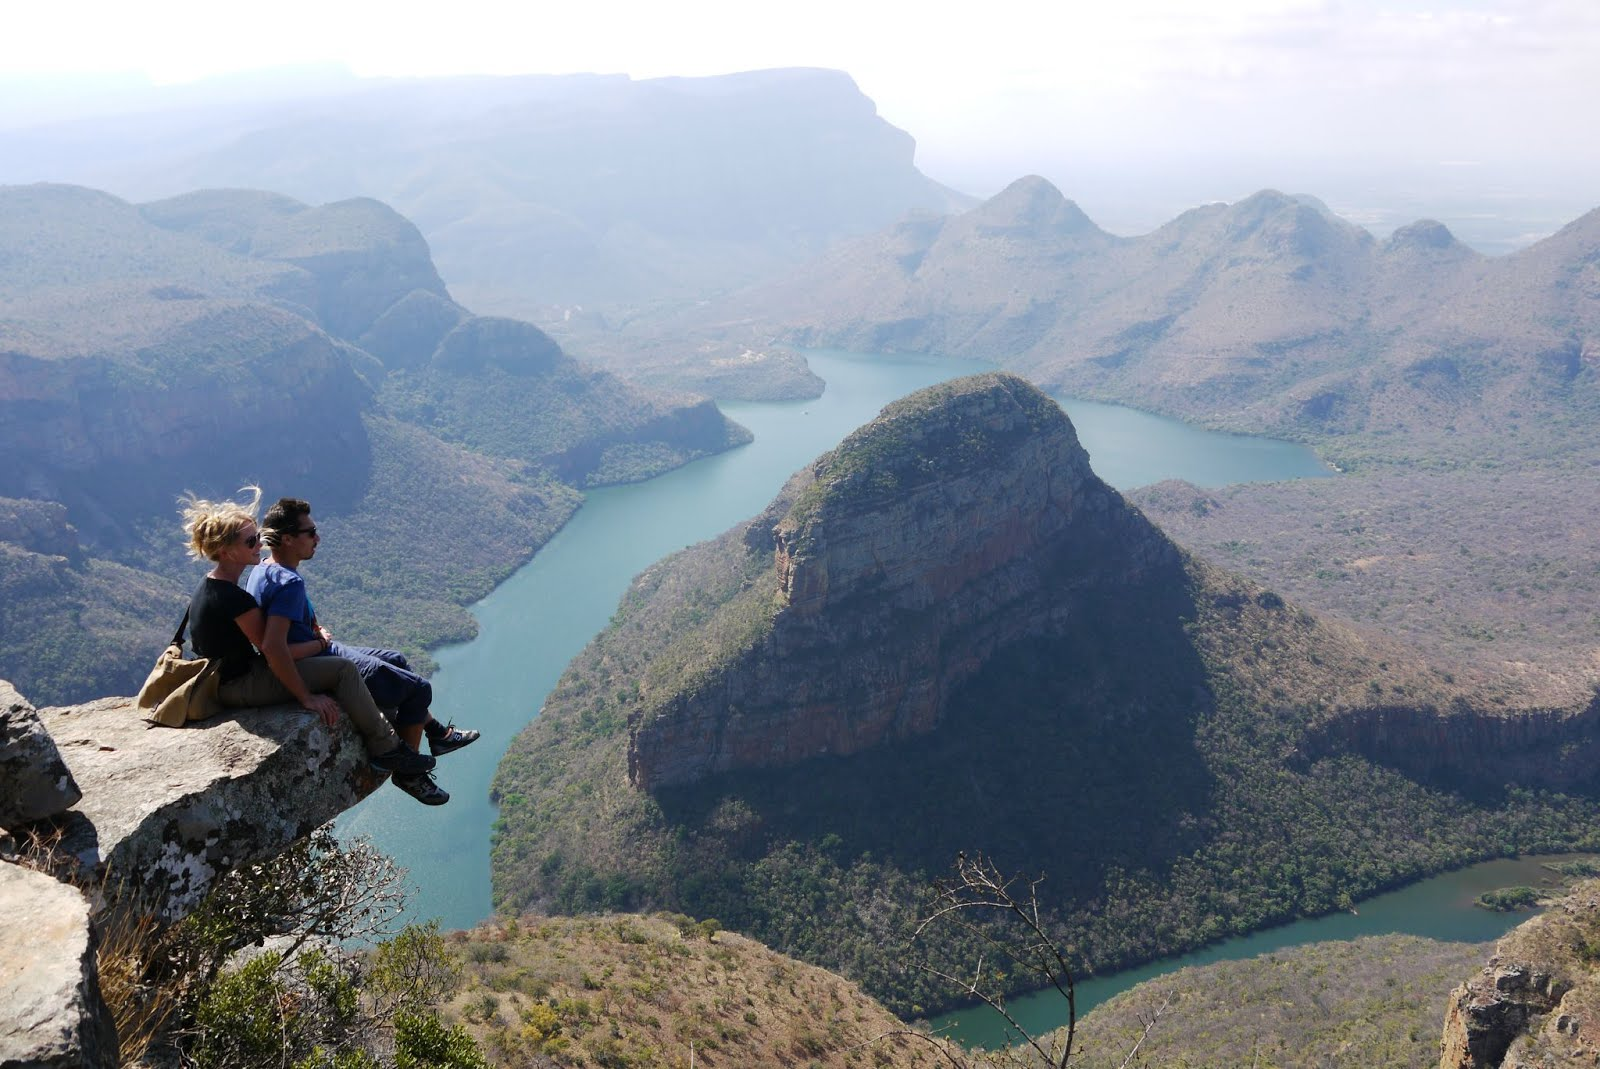 Tourism: South Africa (Spectacular Scenery)